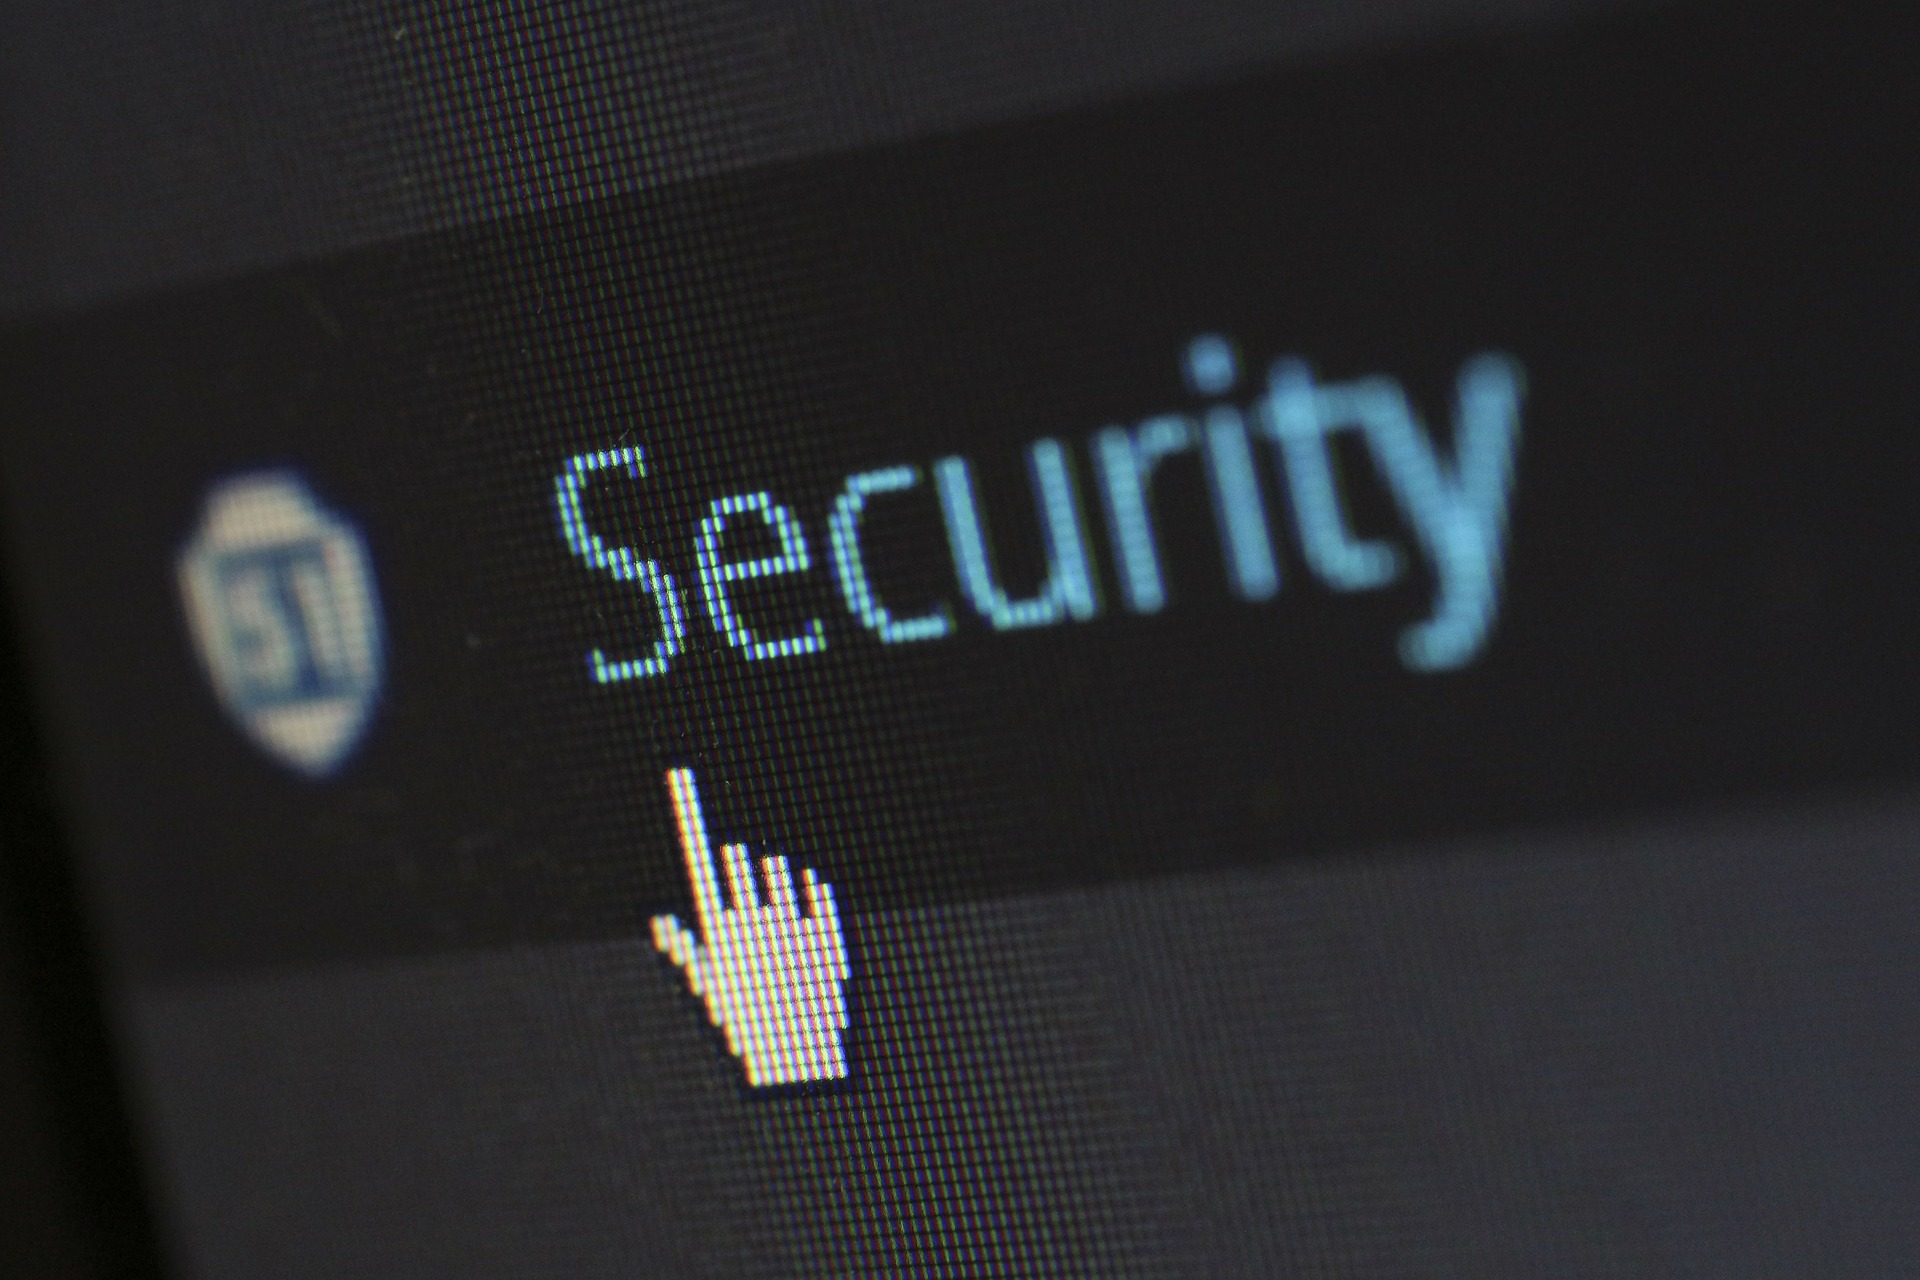 SPI - Security icon on computer screen